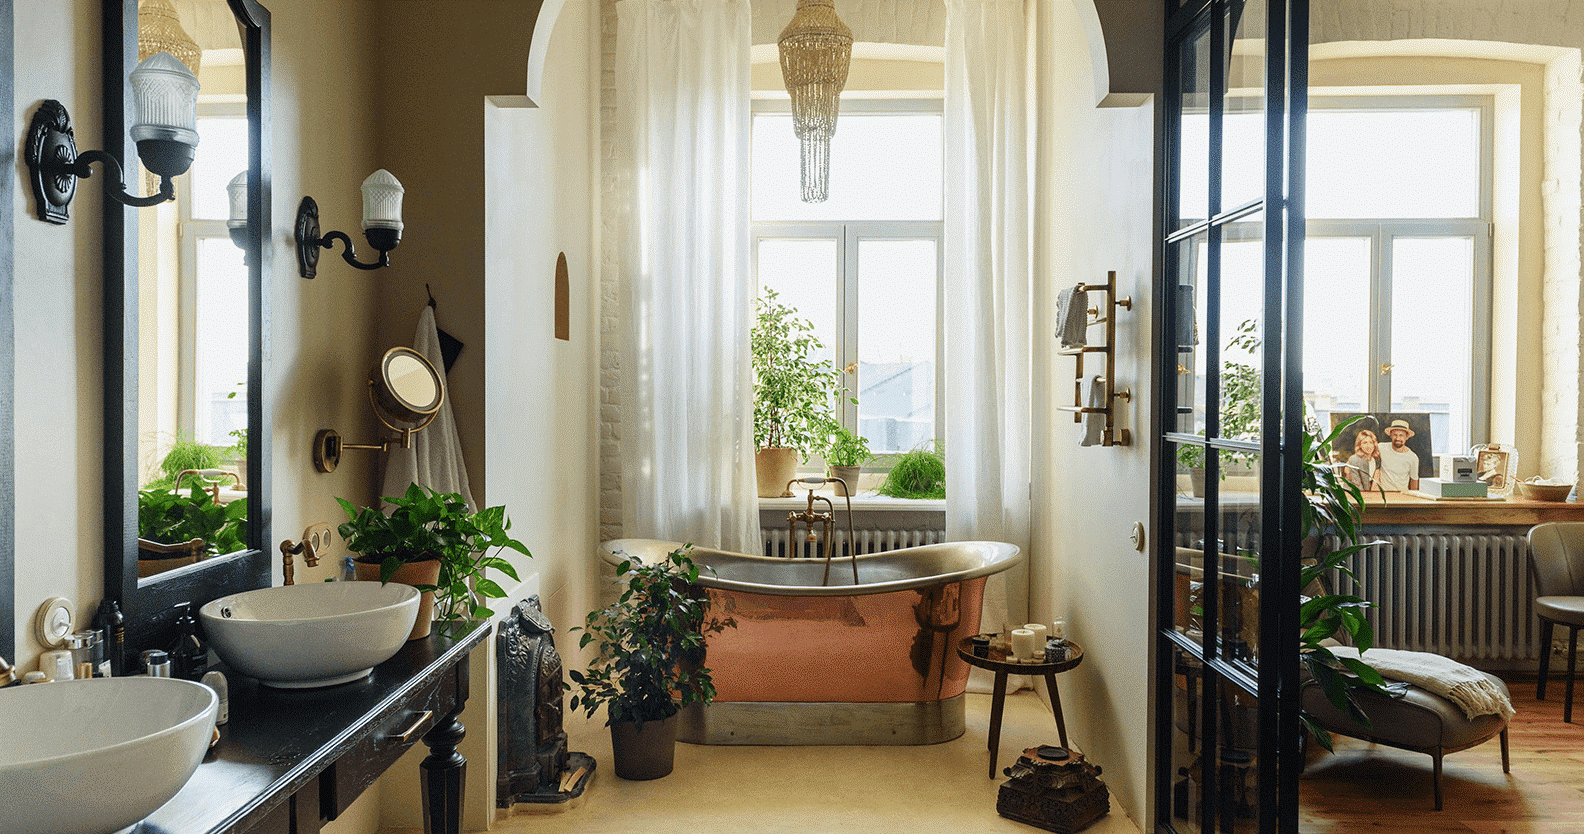 How long can you live in your bathroom for?